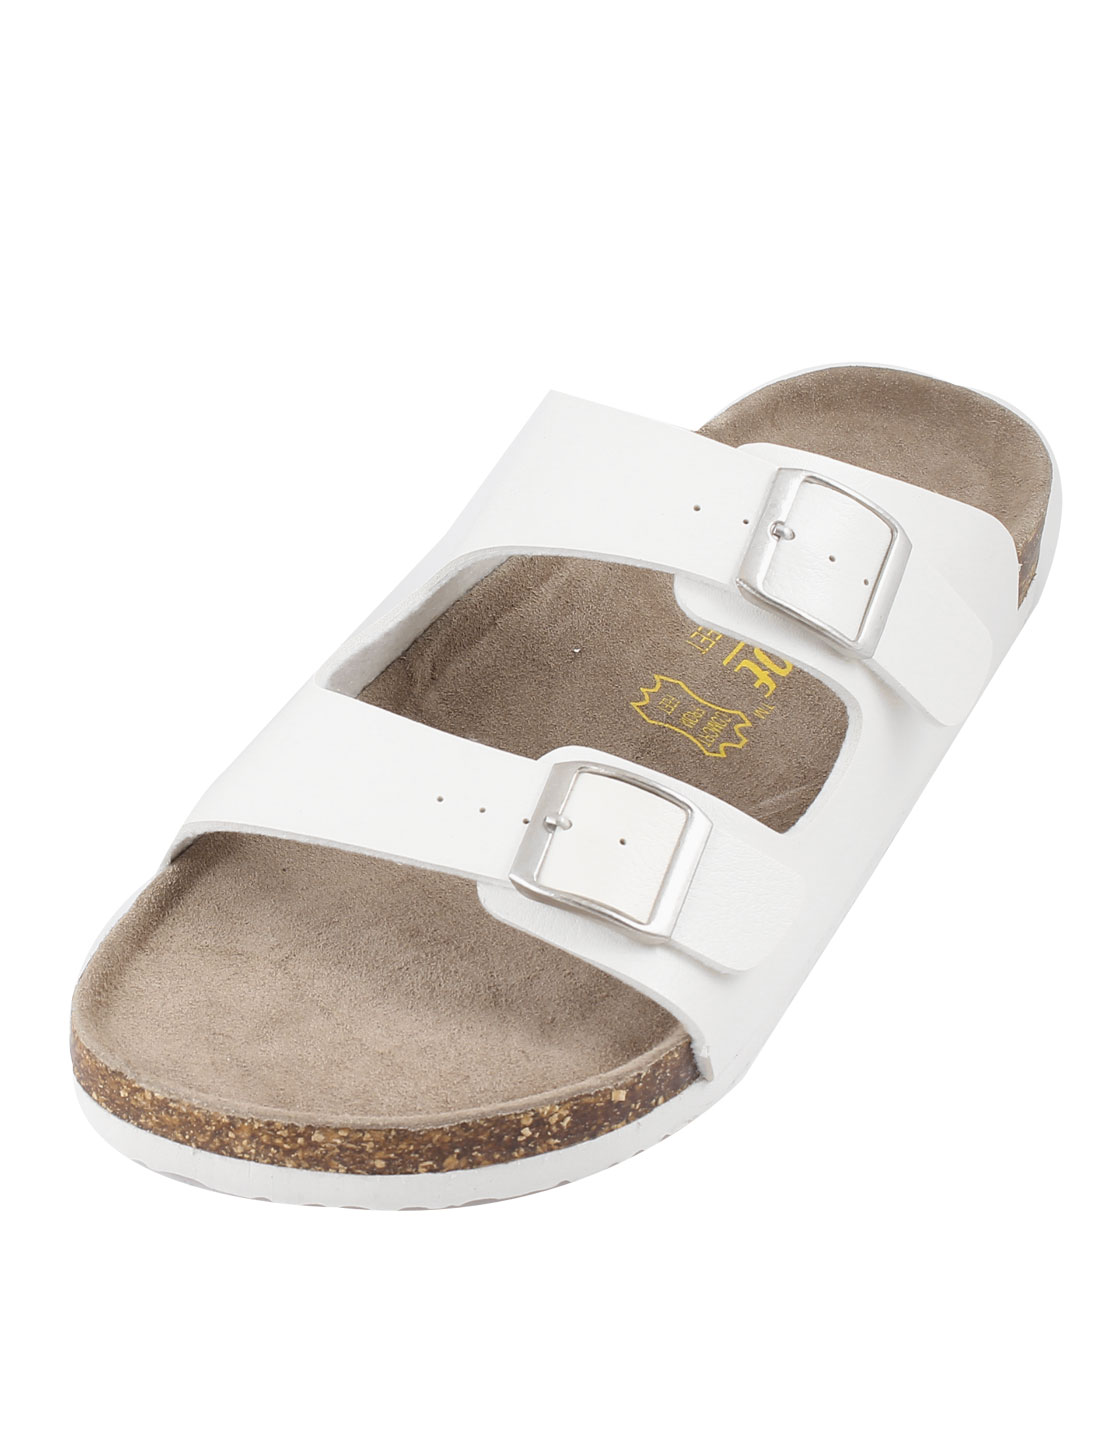 X093 Mens Fashionable Two Buckles White Sandals 43